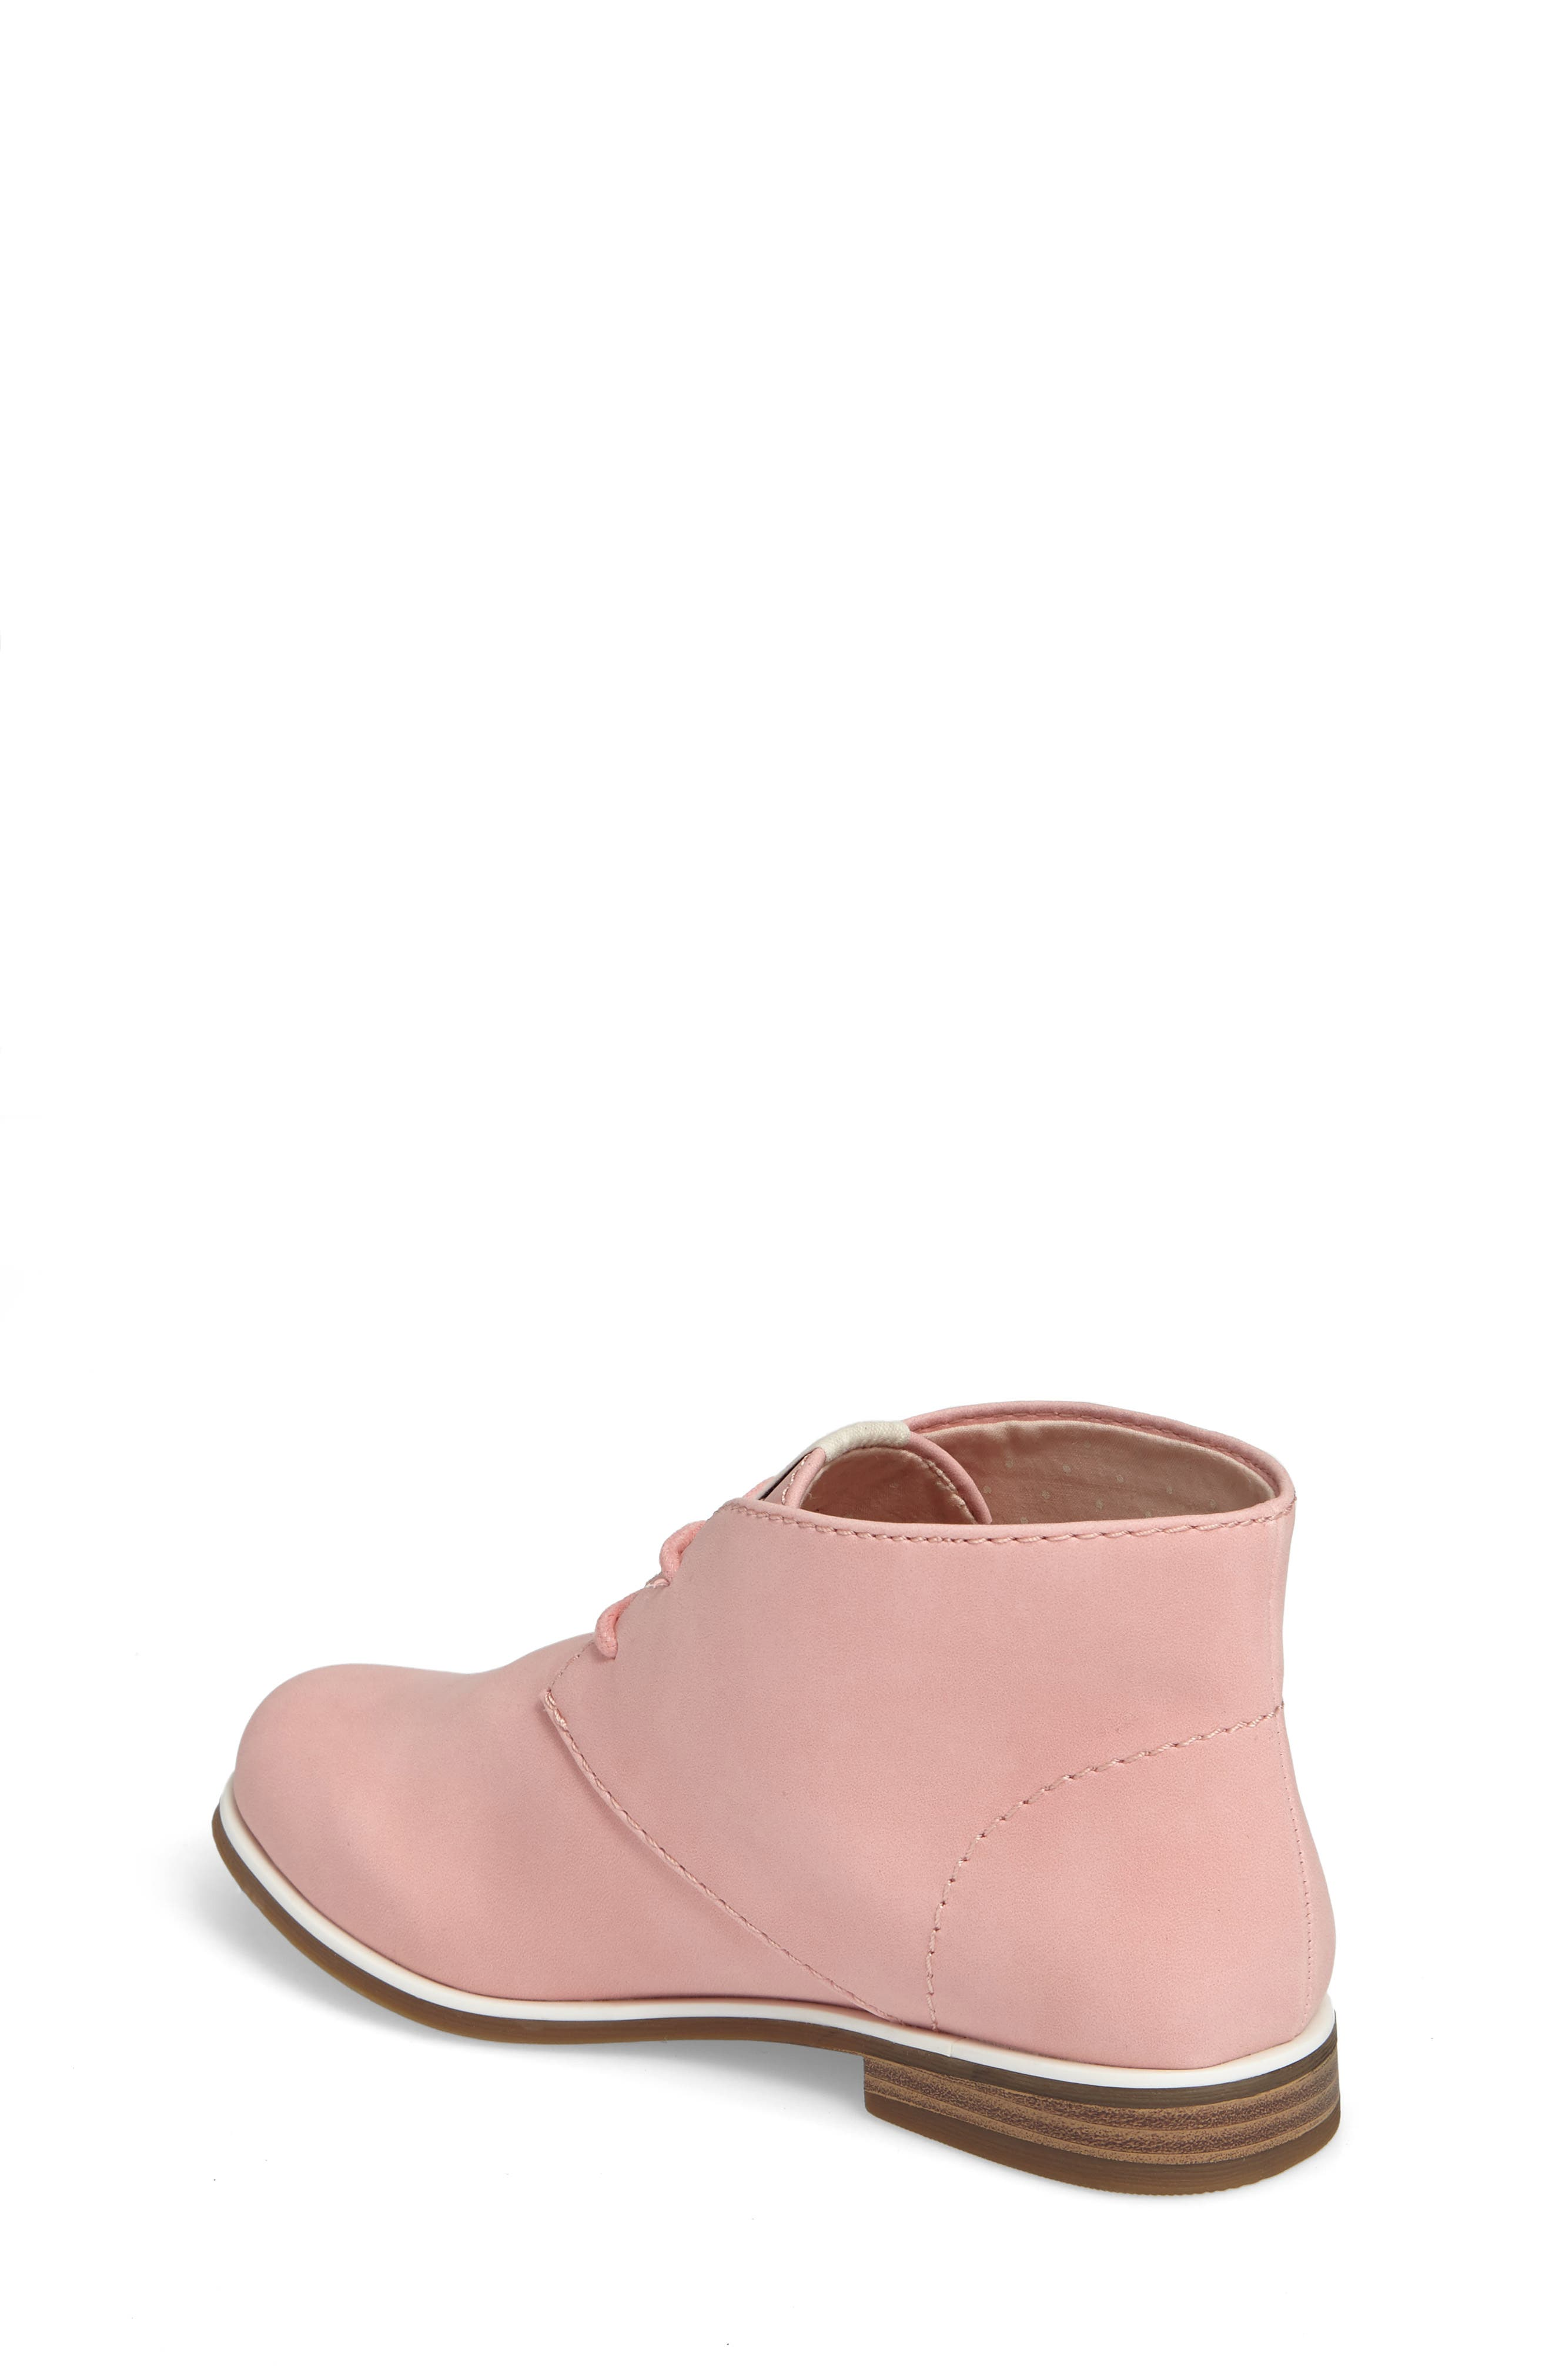 Korie Chukka Bootie,                             Alternate thumbnail 2, color,                             Poppy Pink Suede